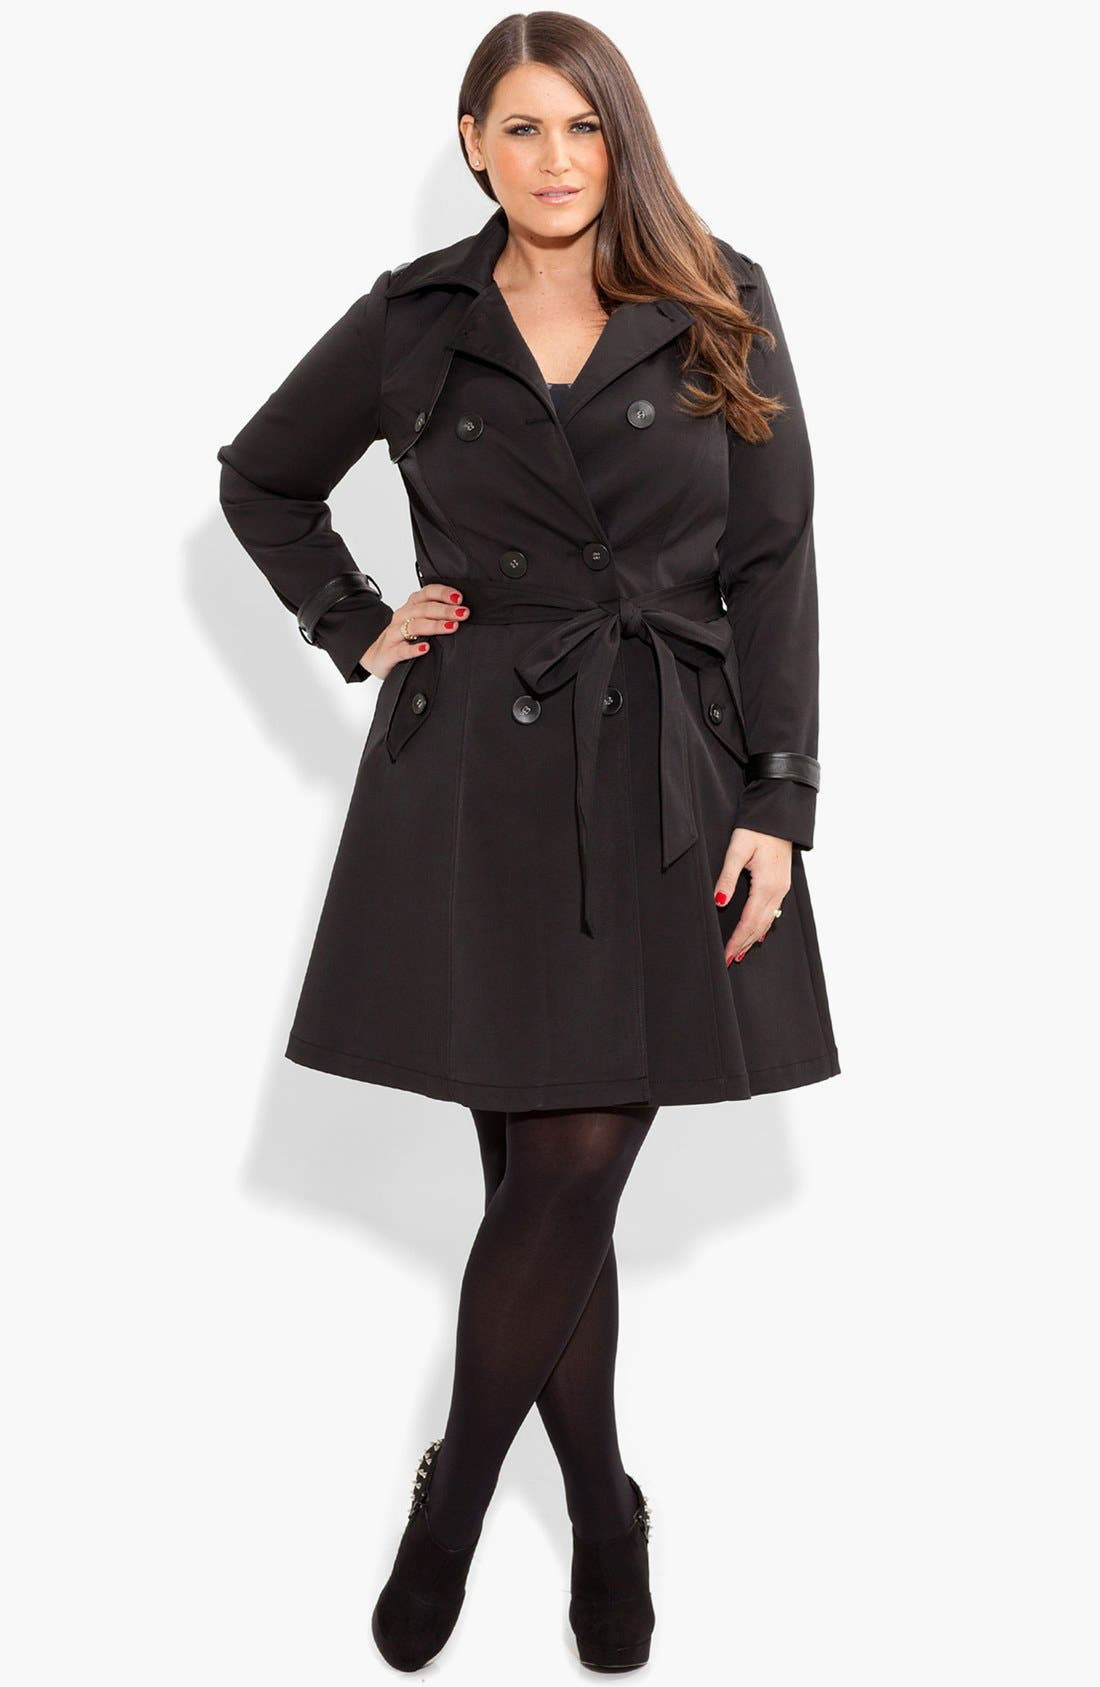 Alternate Image 1 Selected - City Chic Corset Back Trench Coat (Plus Size)